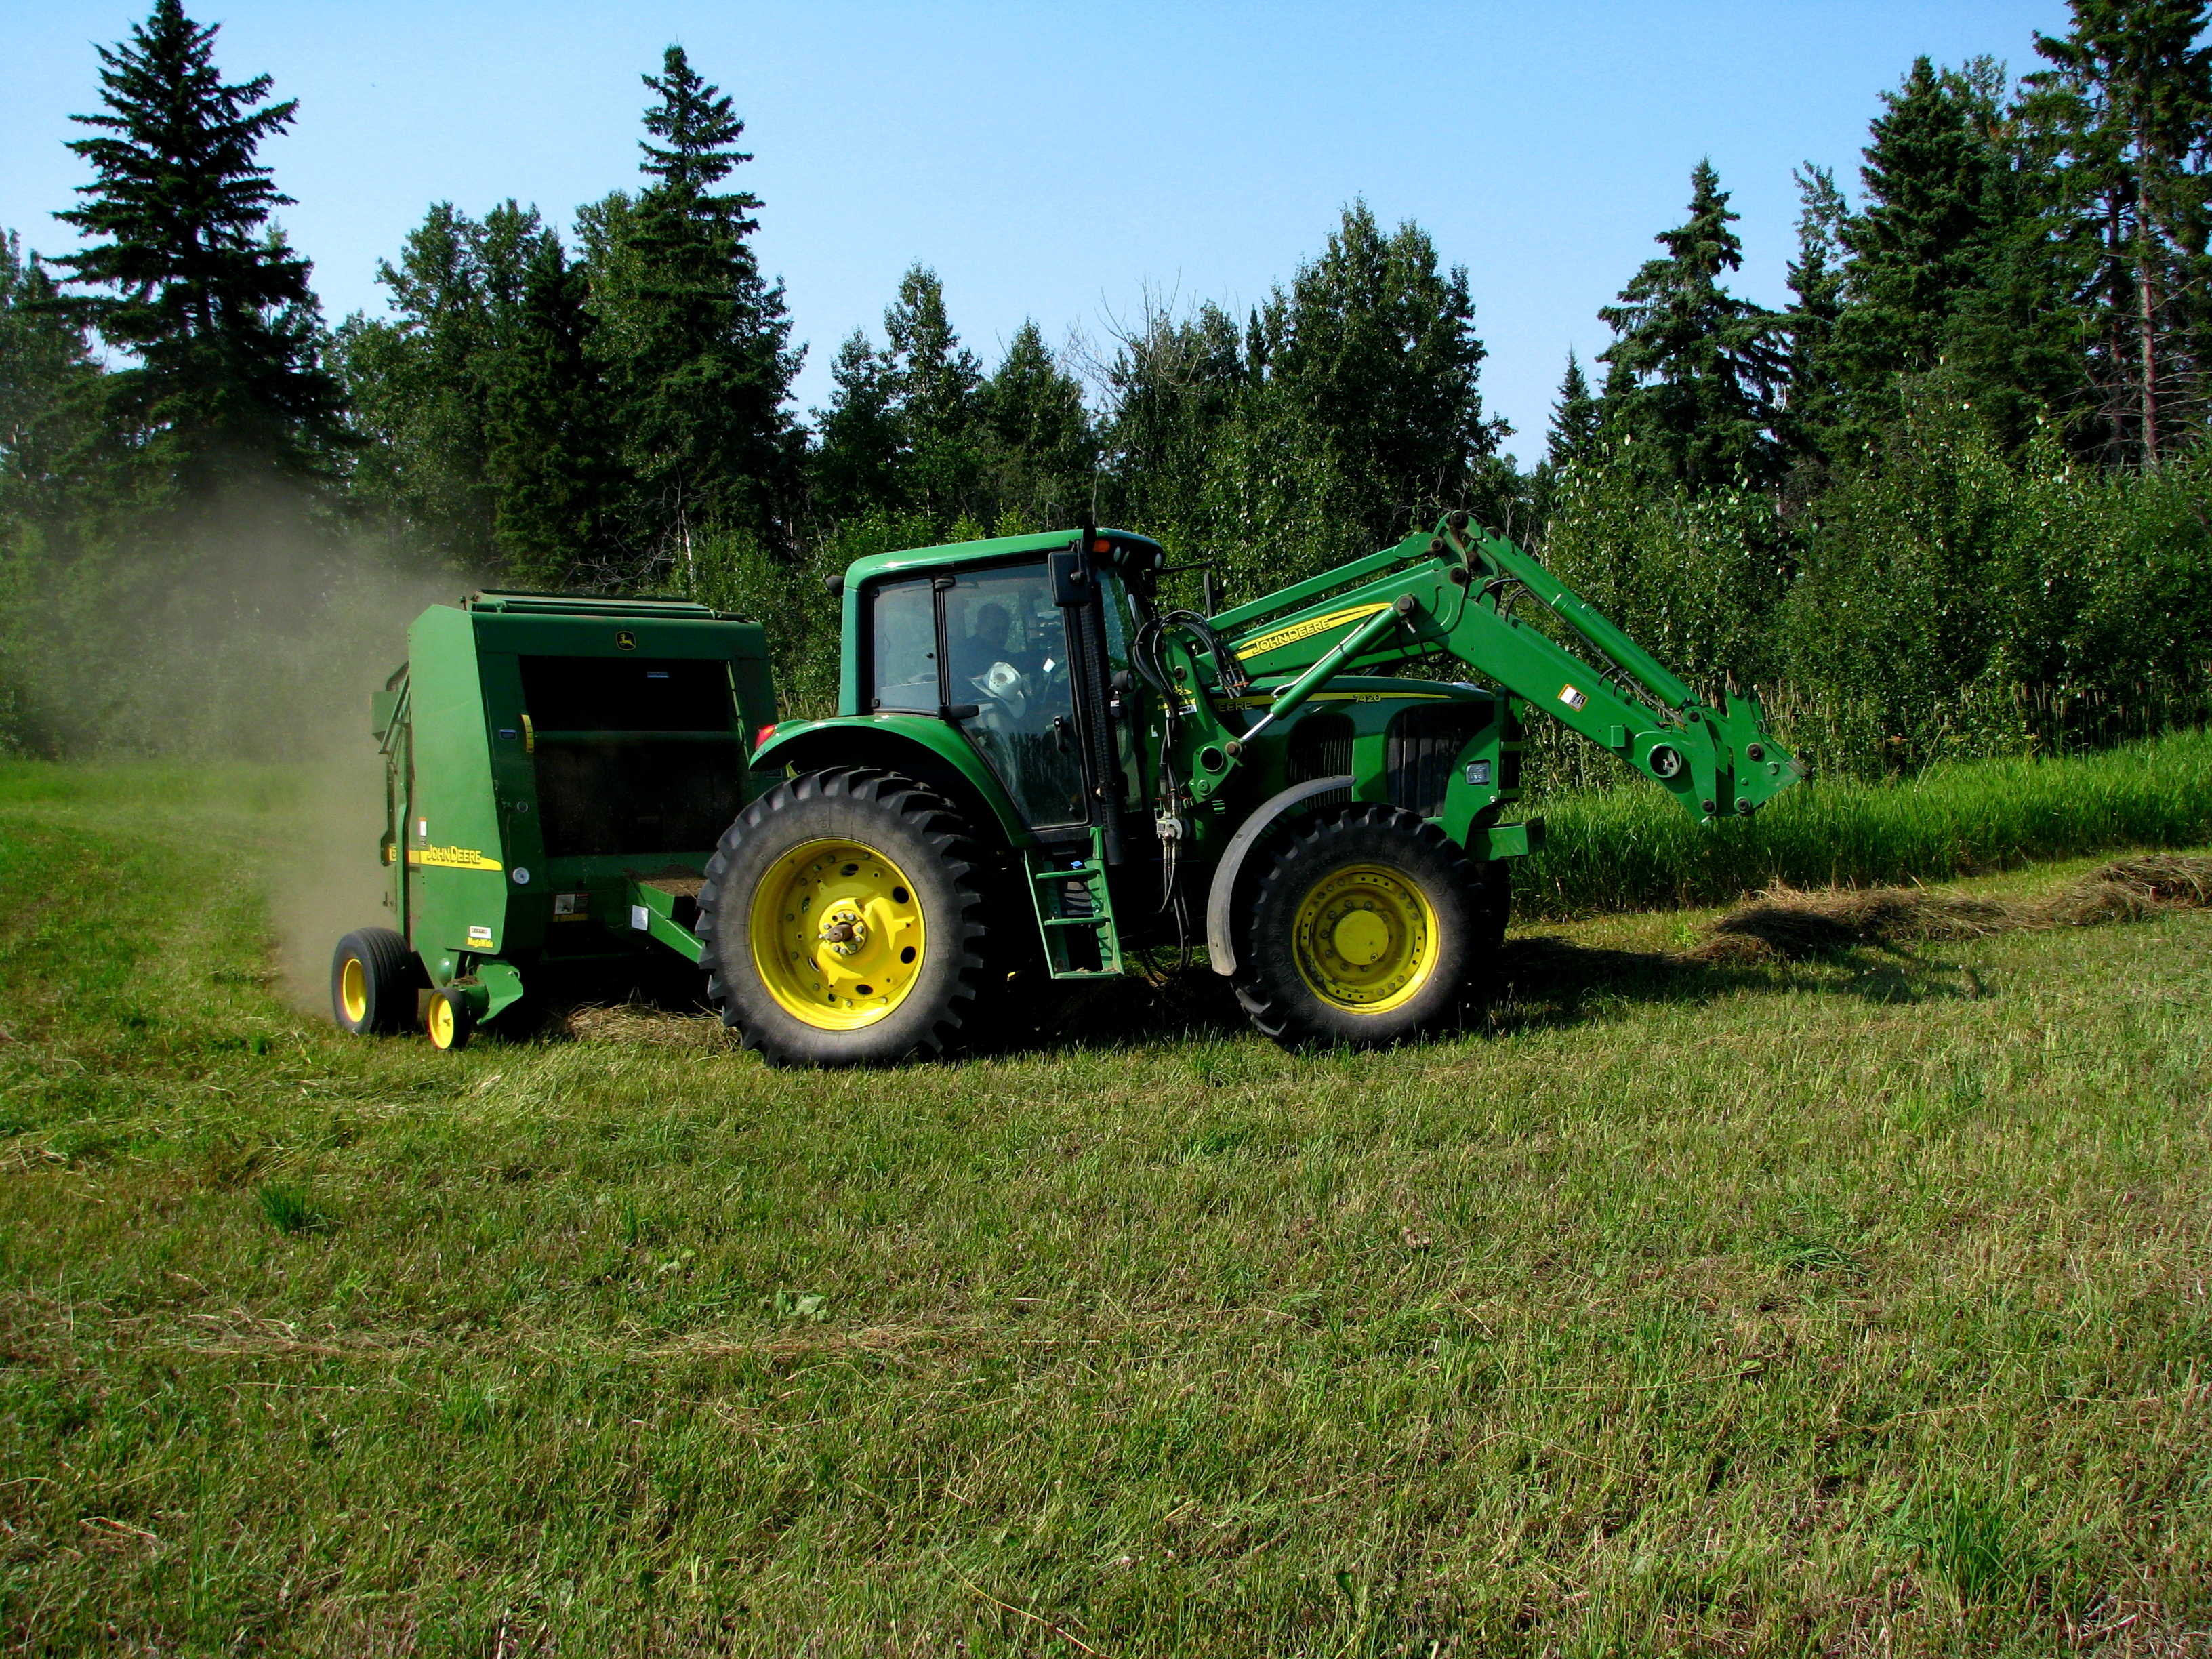 File:John Deere 7420 and 567 baler 1 jpg - Wikimedia Commons